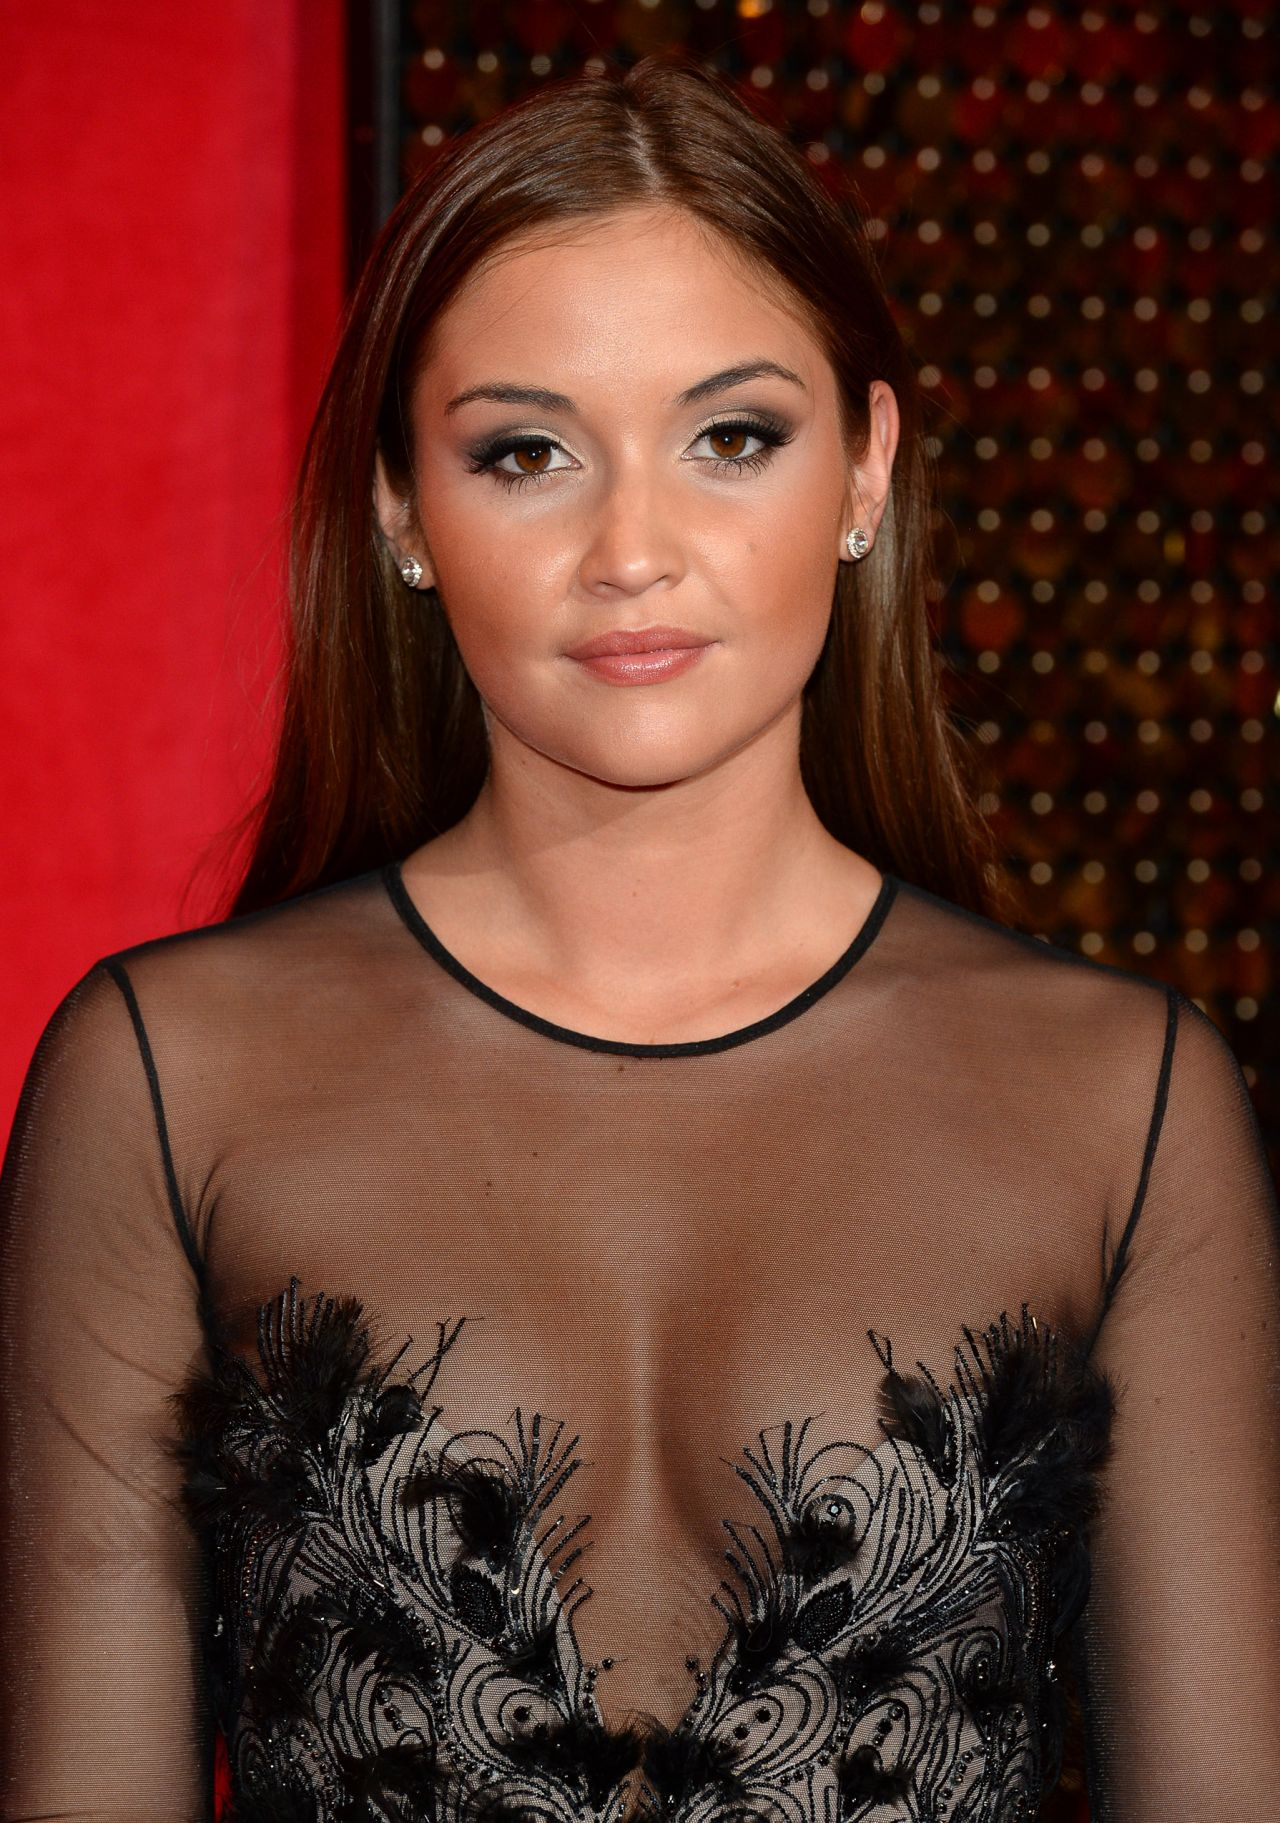 Jacqueline Jossa - 2014 British Soap Awards in London